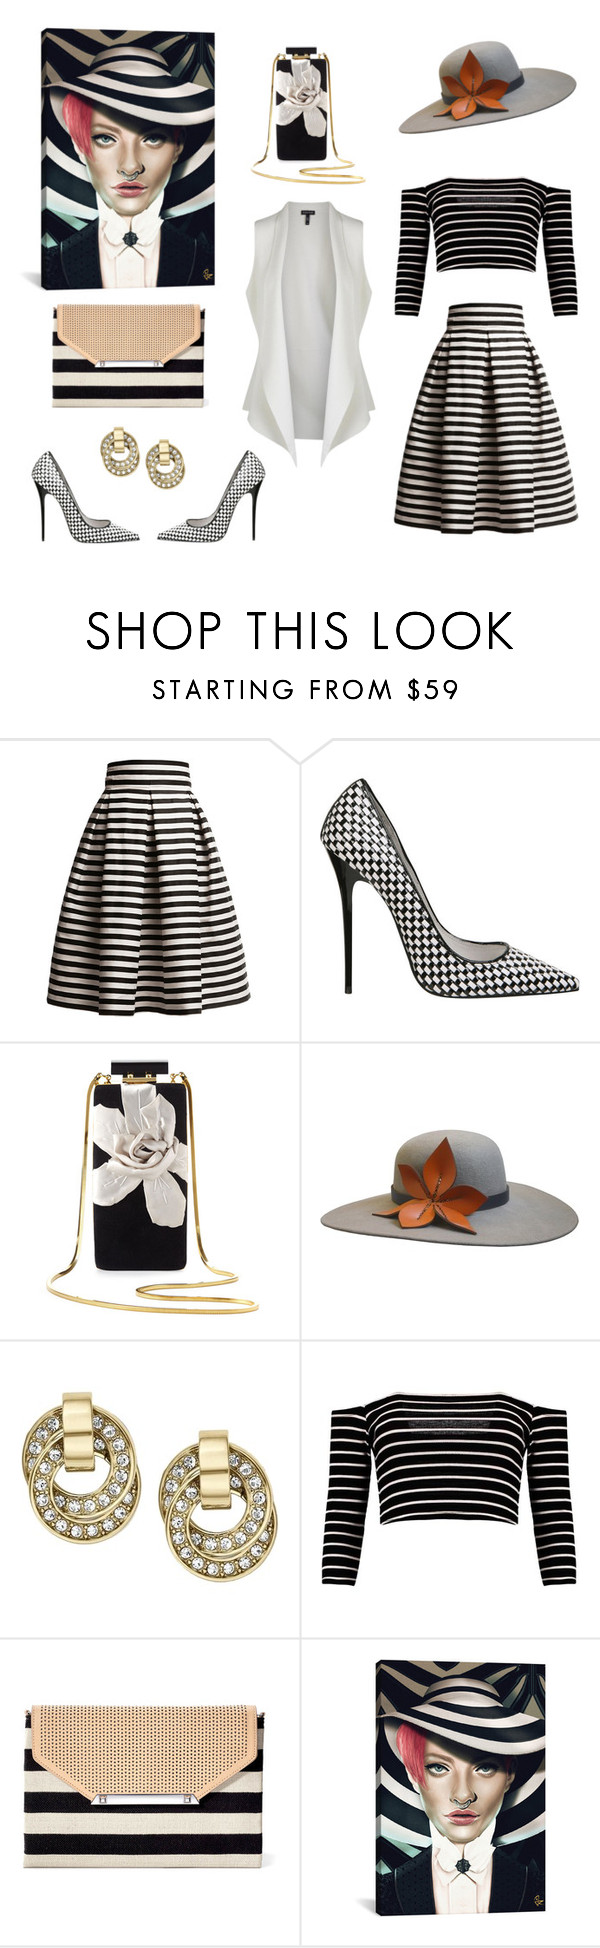 """""""Untitled #76"""" by sanjati ❤ liked on Polyvore featuring Rumour London, Jeffrey Campbell, Lanvin, The Season Hats, Michael Kors, Stella & Dot and Eileen Fisher"""